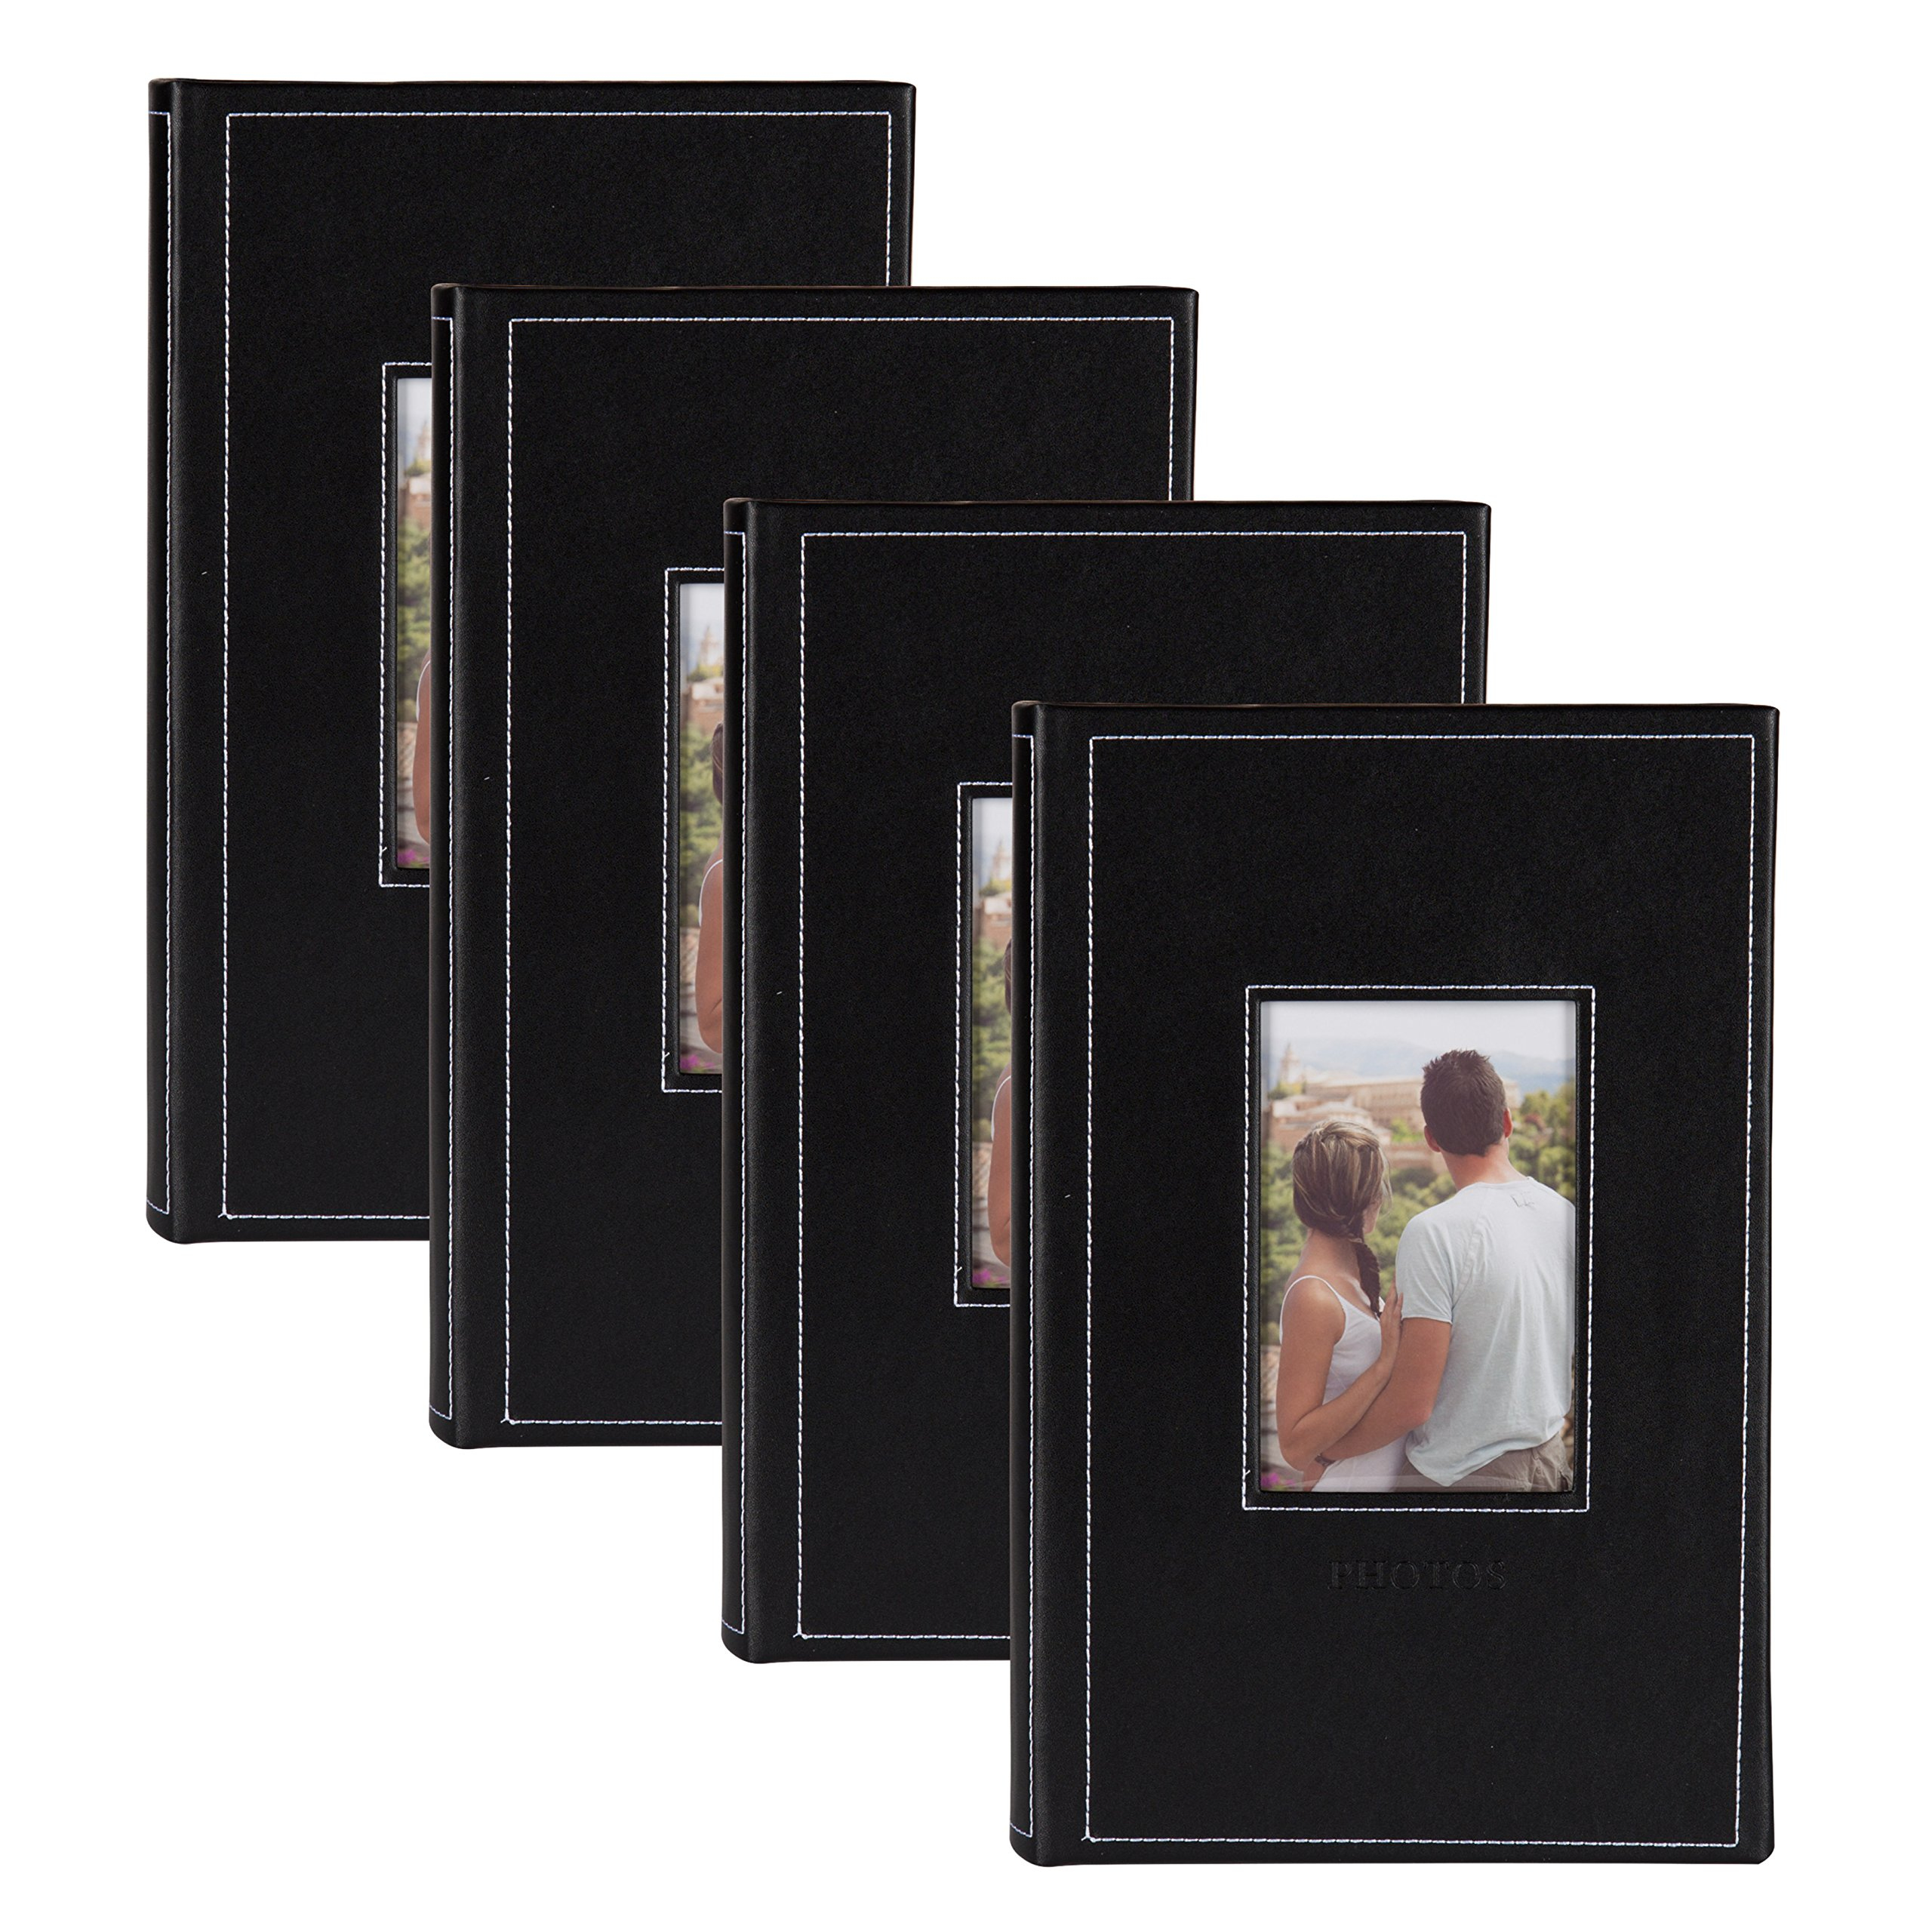 DesignOvation Debossed Black Faux Leather Photo Album, Holds 300 4x6 Photos, Set of 4